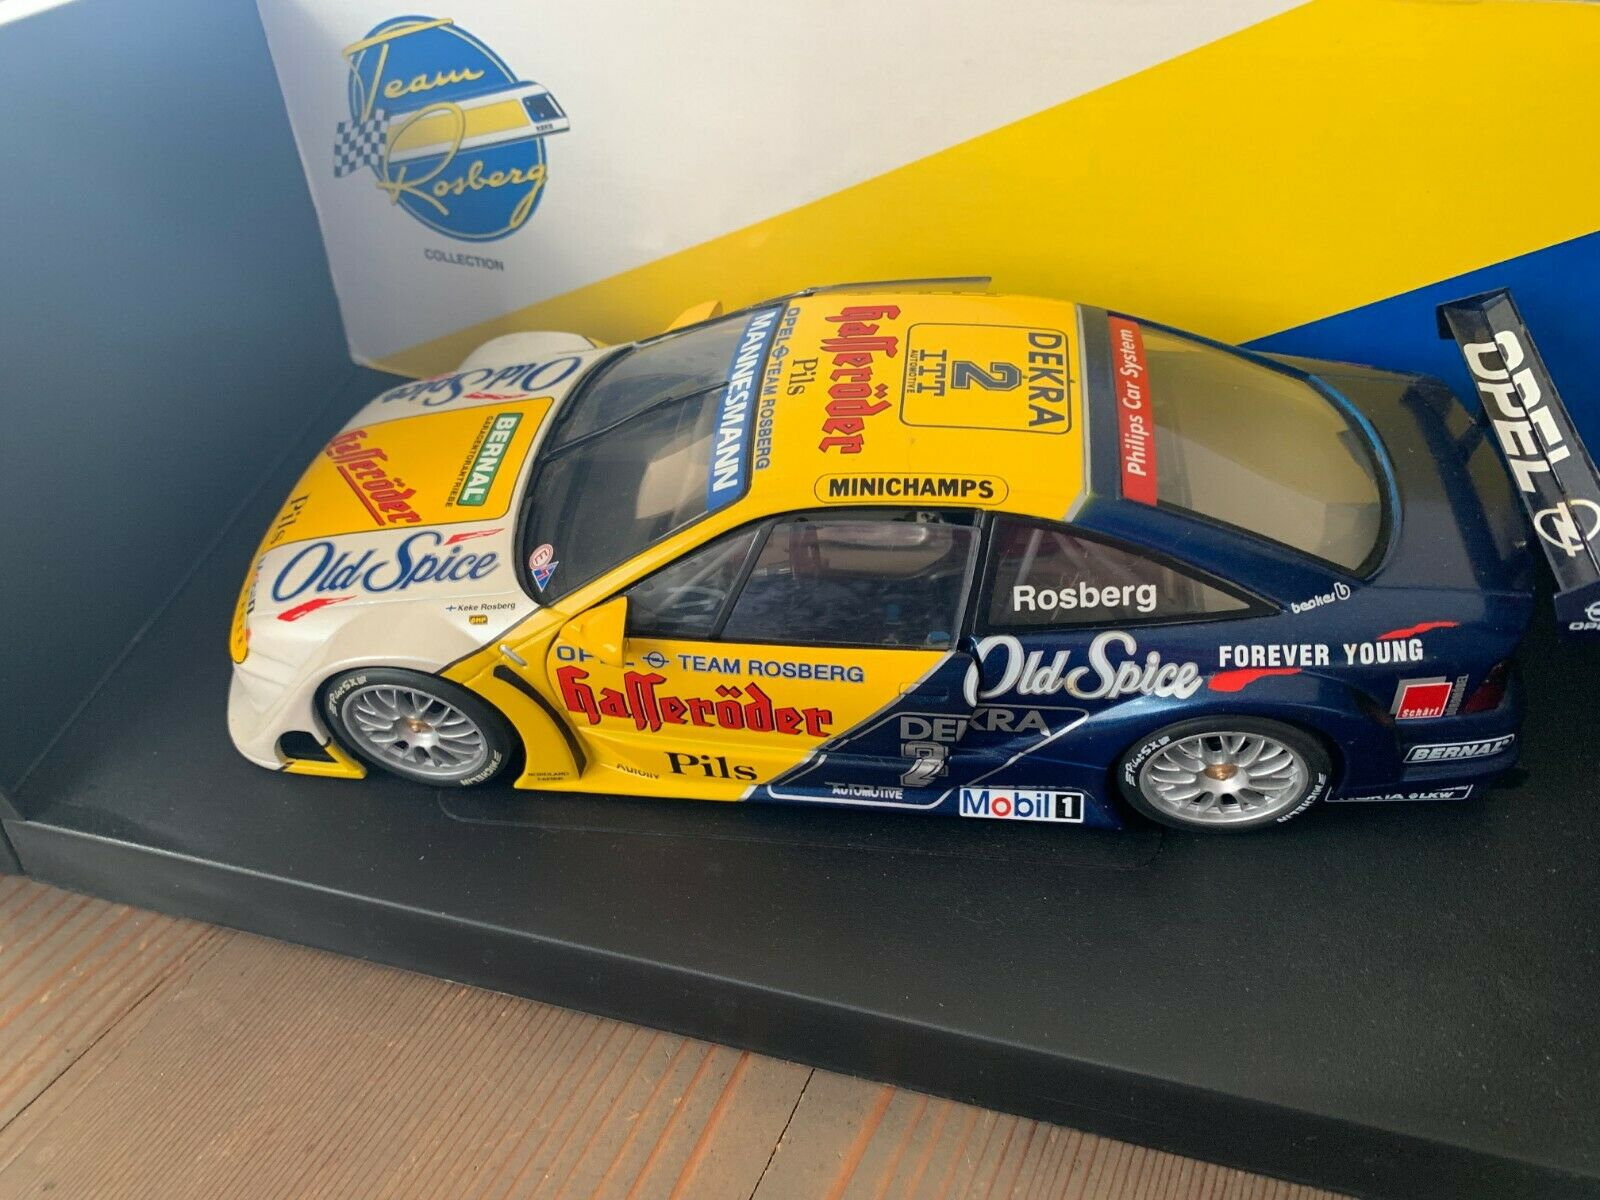 ROSBERG OPEL CALIBRA DTM 1 18 DIE CAST MODEL EXCELLENT CONDITION